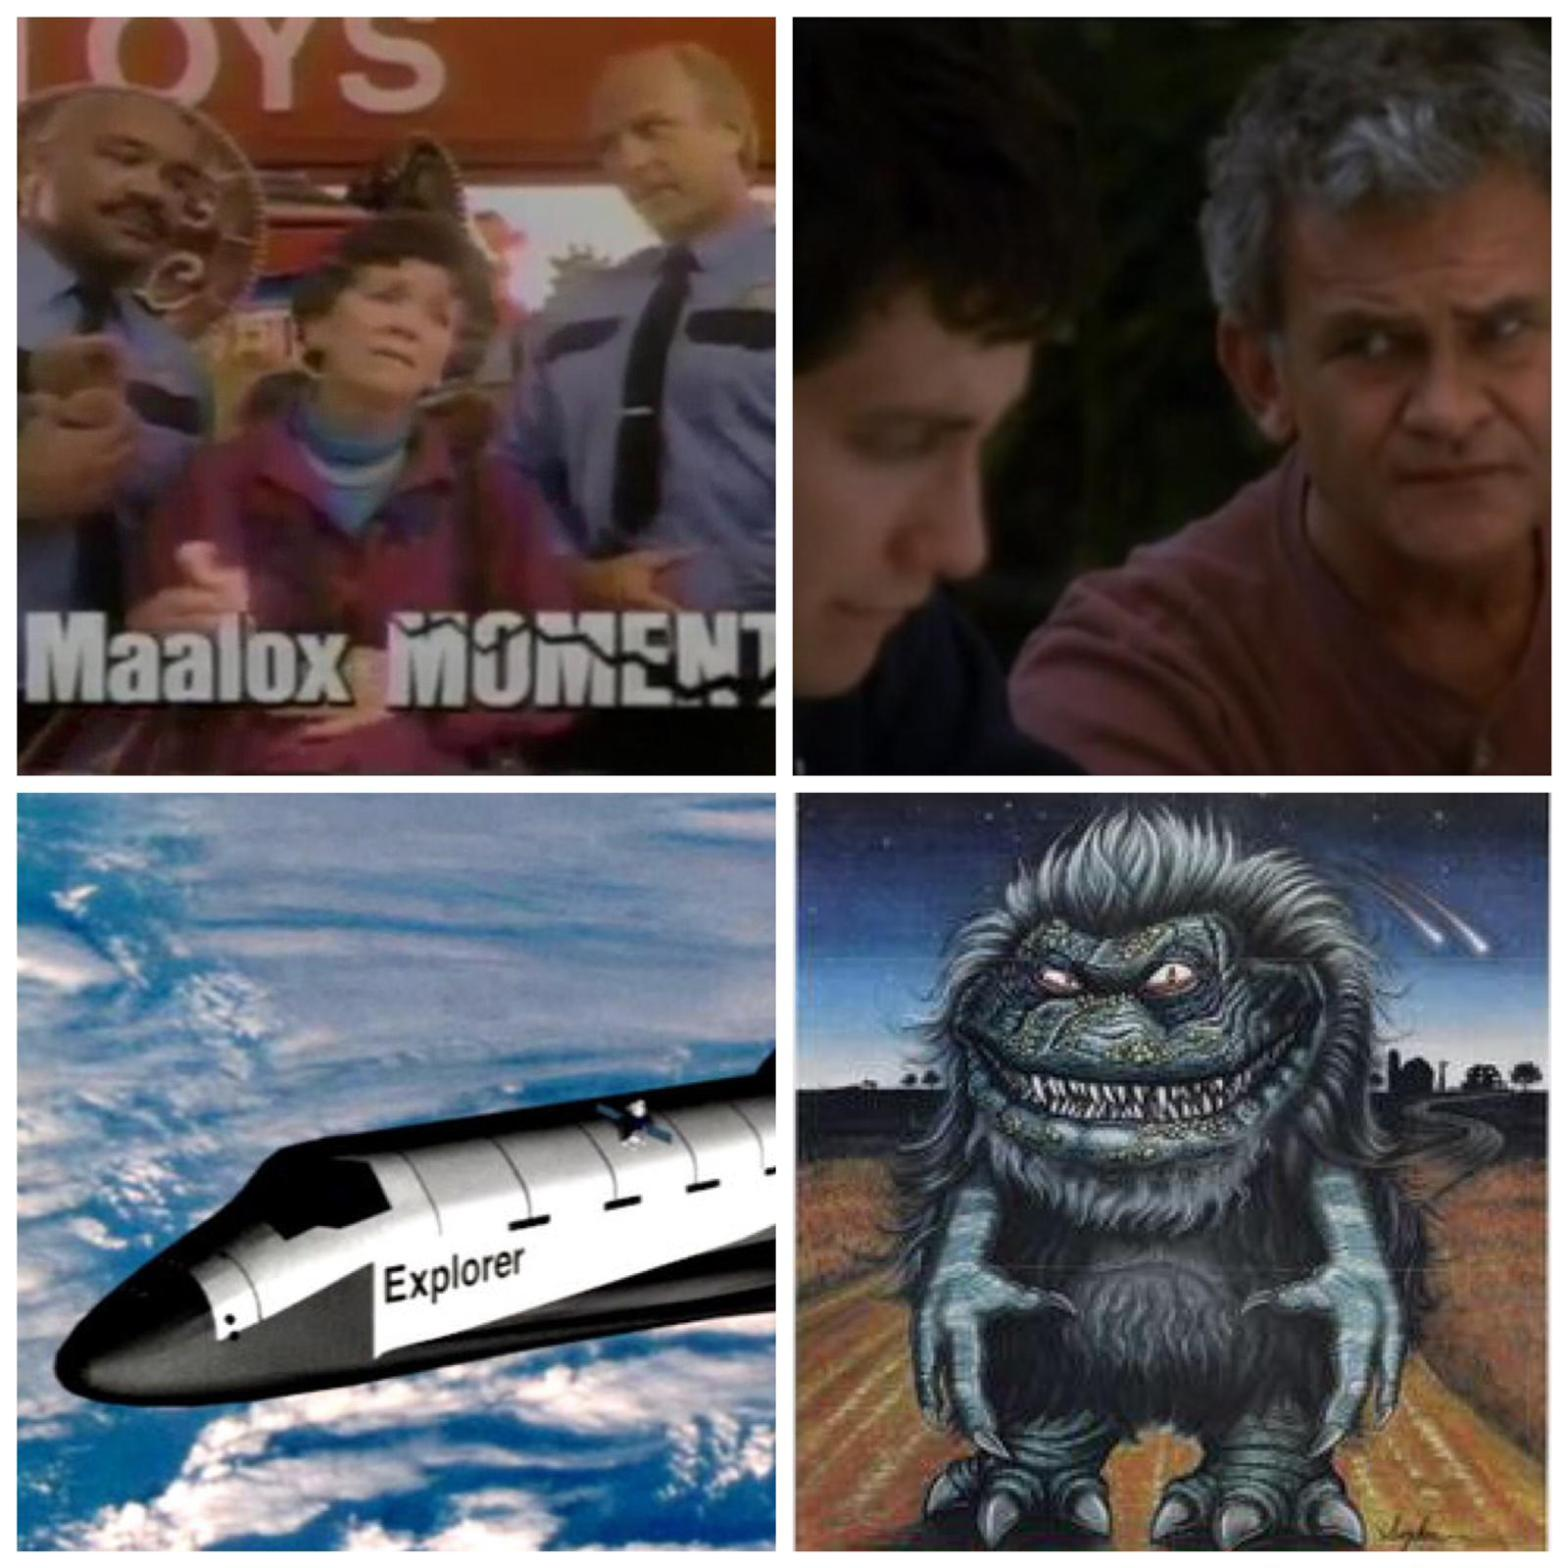 Screenshots of the Maalox Moment commercials, Donnie Darko, a CGI space shuttle, and the critters from the movie Critters.